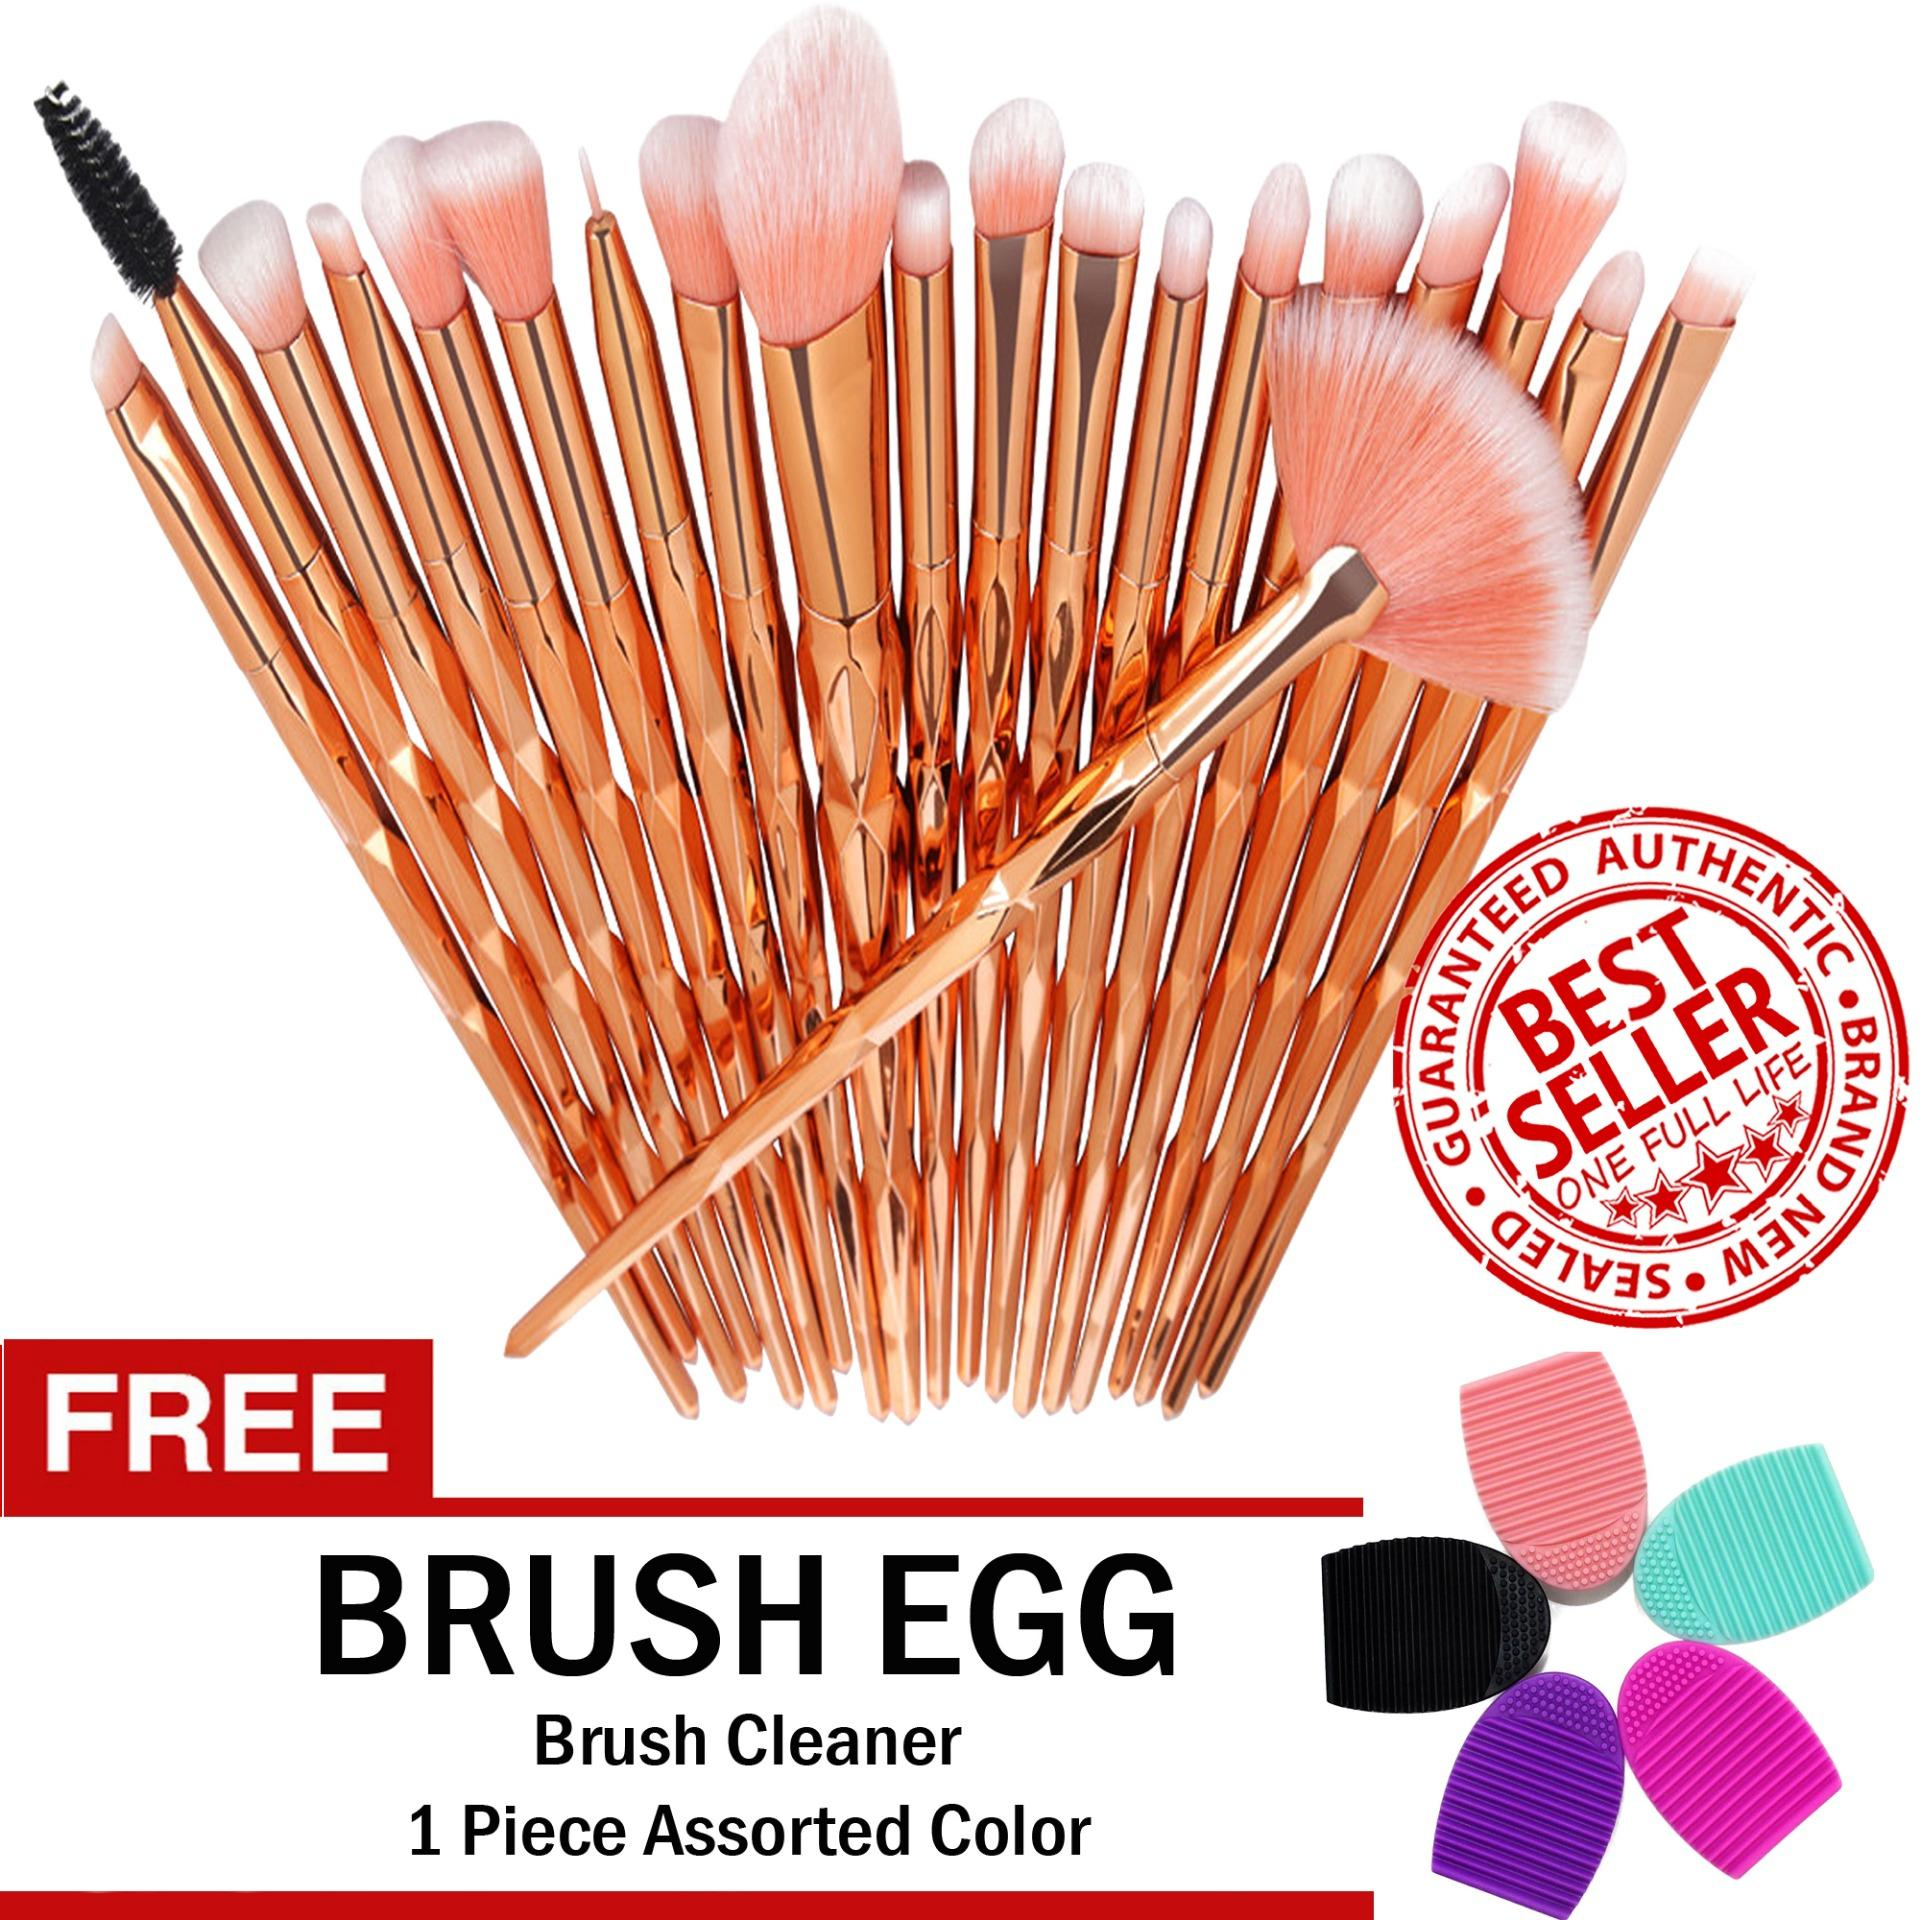 Unicorn Makeup Brush Set 20-Piece ROSE GOLD with with FREE Brush Egg Brush Cleaner Philippines